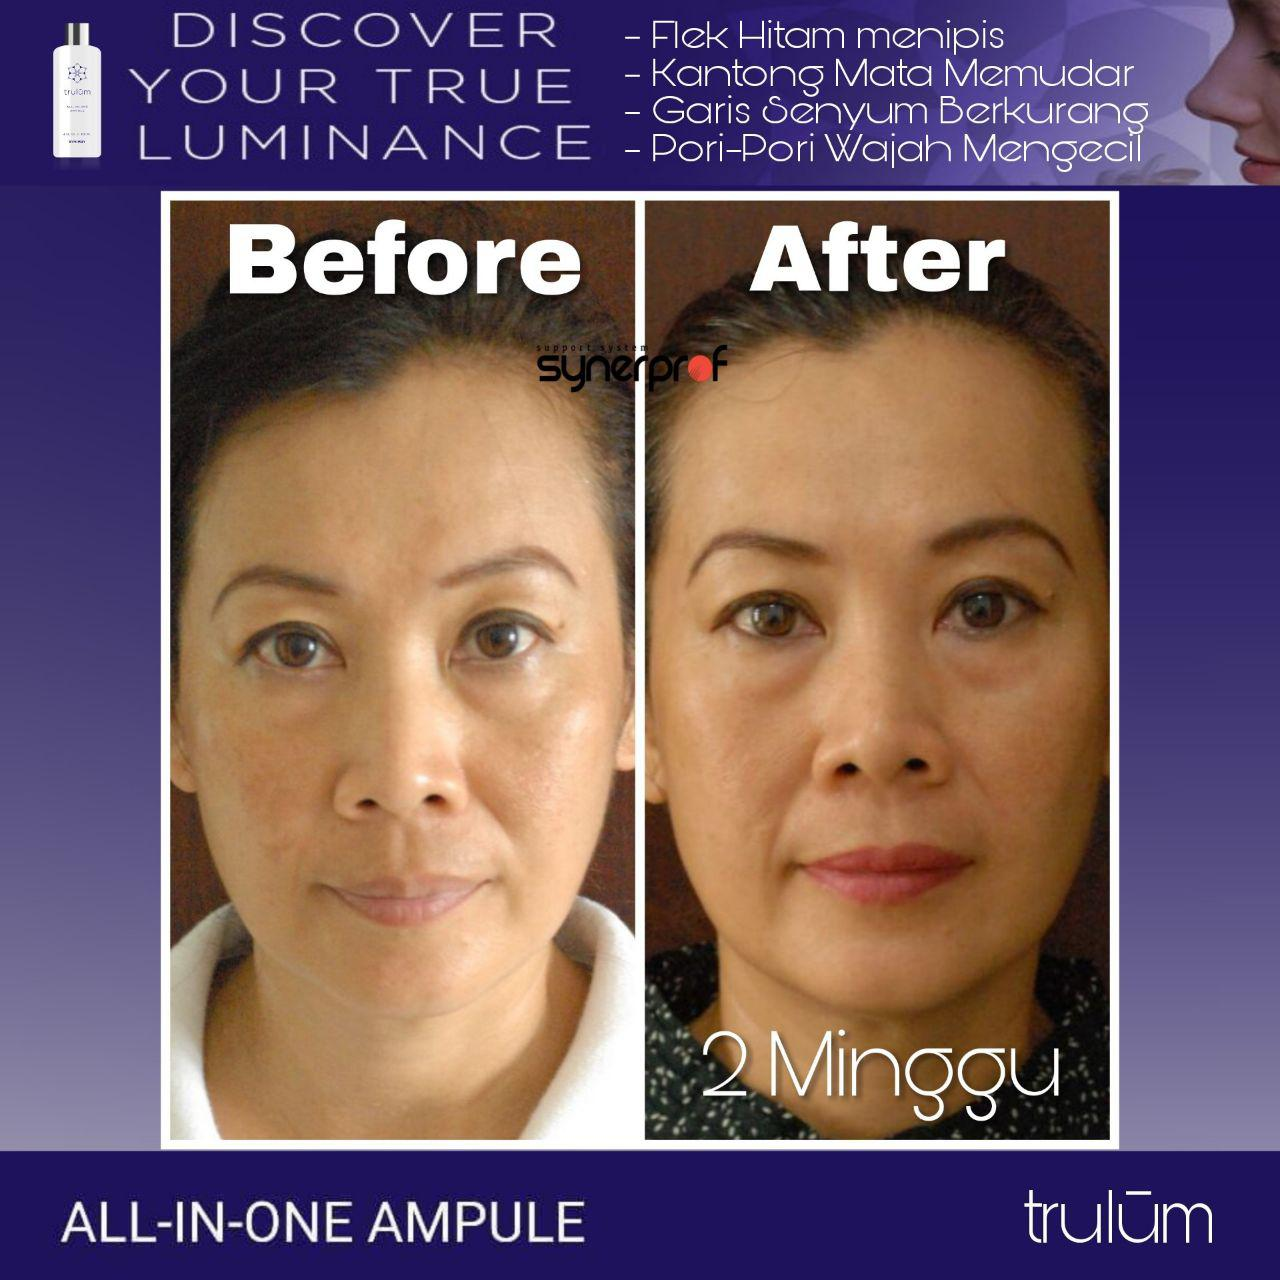 Jual Trulum All In One Ampoule Di Miangas WA: 08112338376